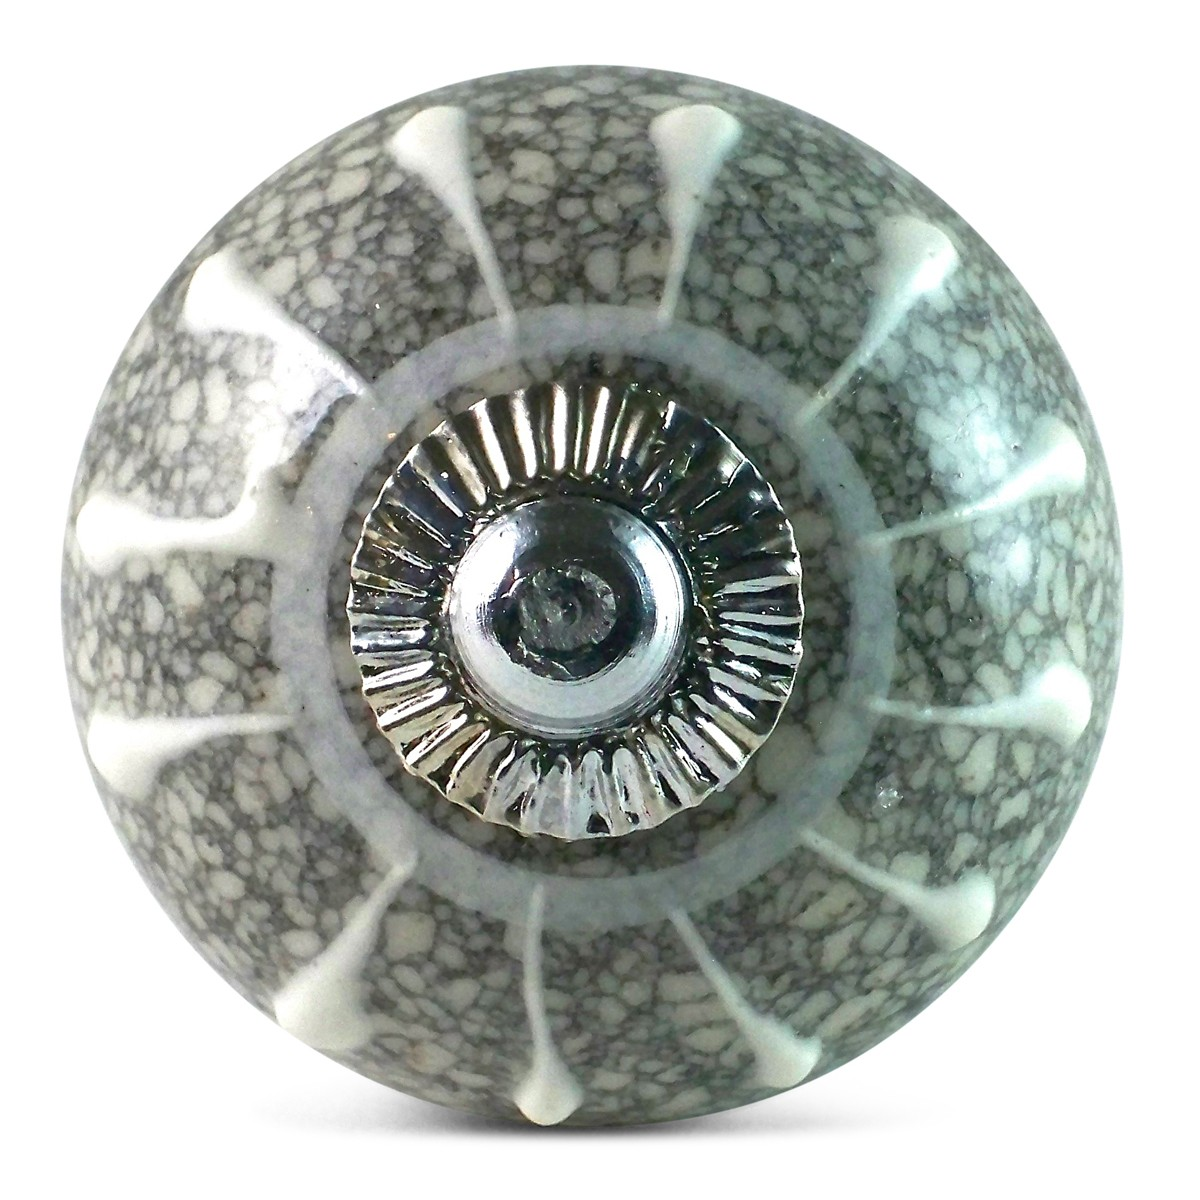 Porcelain Pumpkin Knobs Grey And White Star Marble Knob 2,90 € Cement Tile - Boutonsdemeubles.com